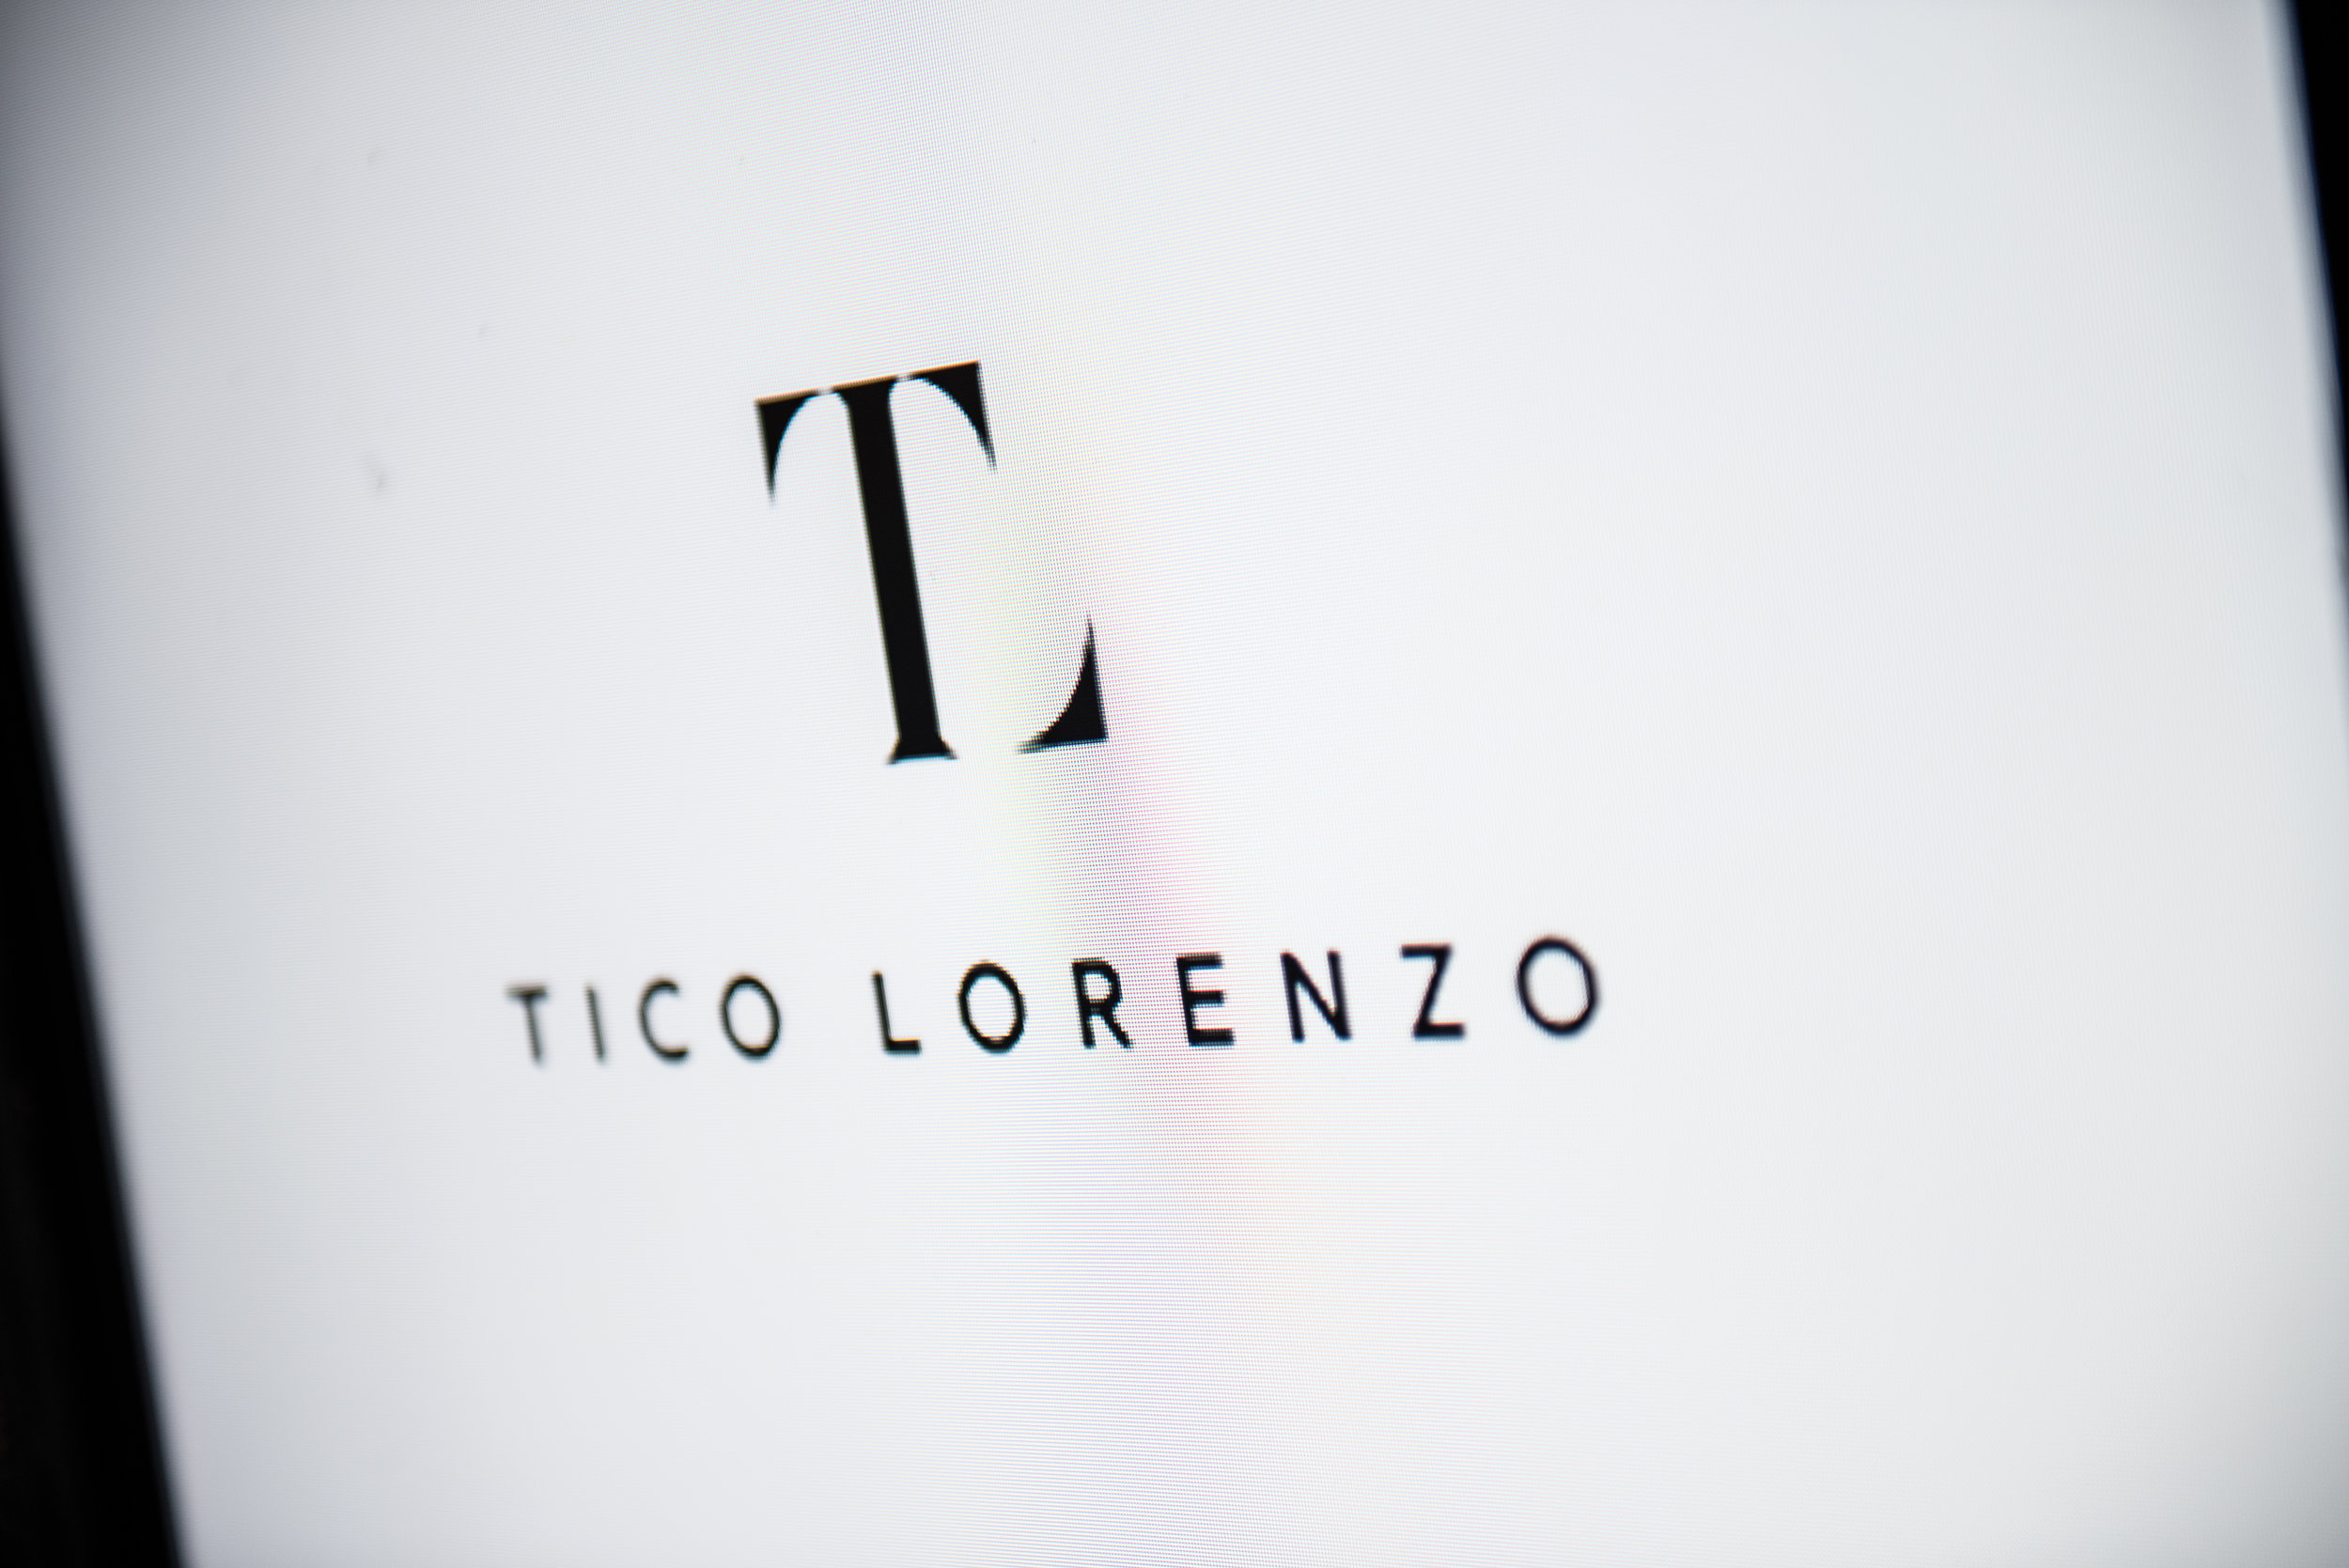 Tico Lorenzo Launch-134.jpg